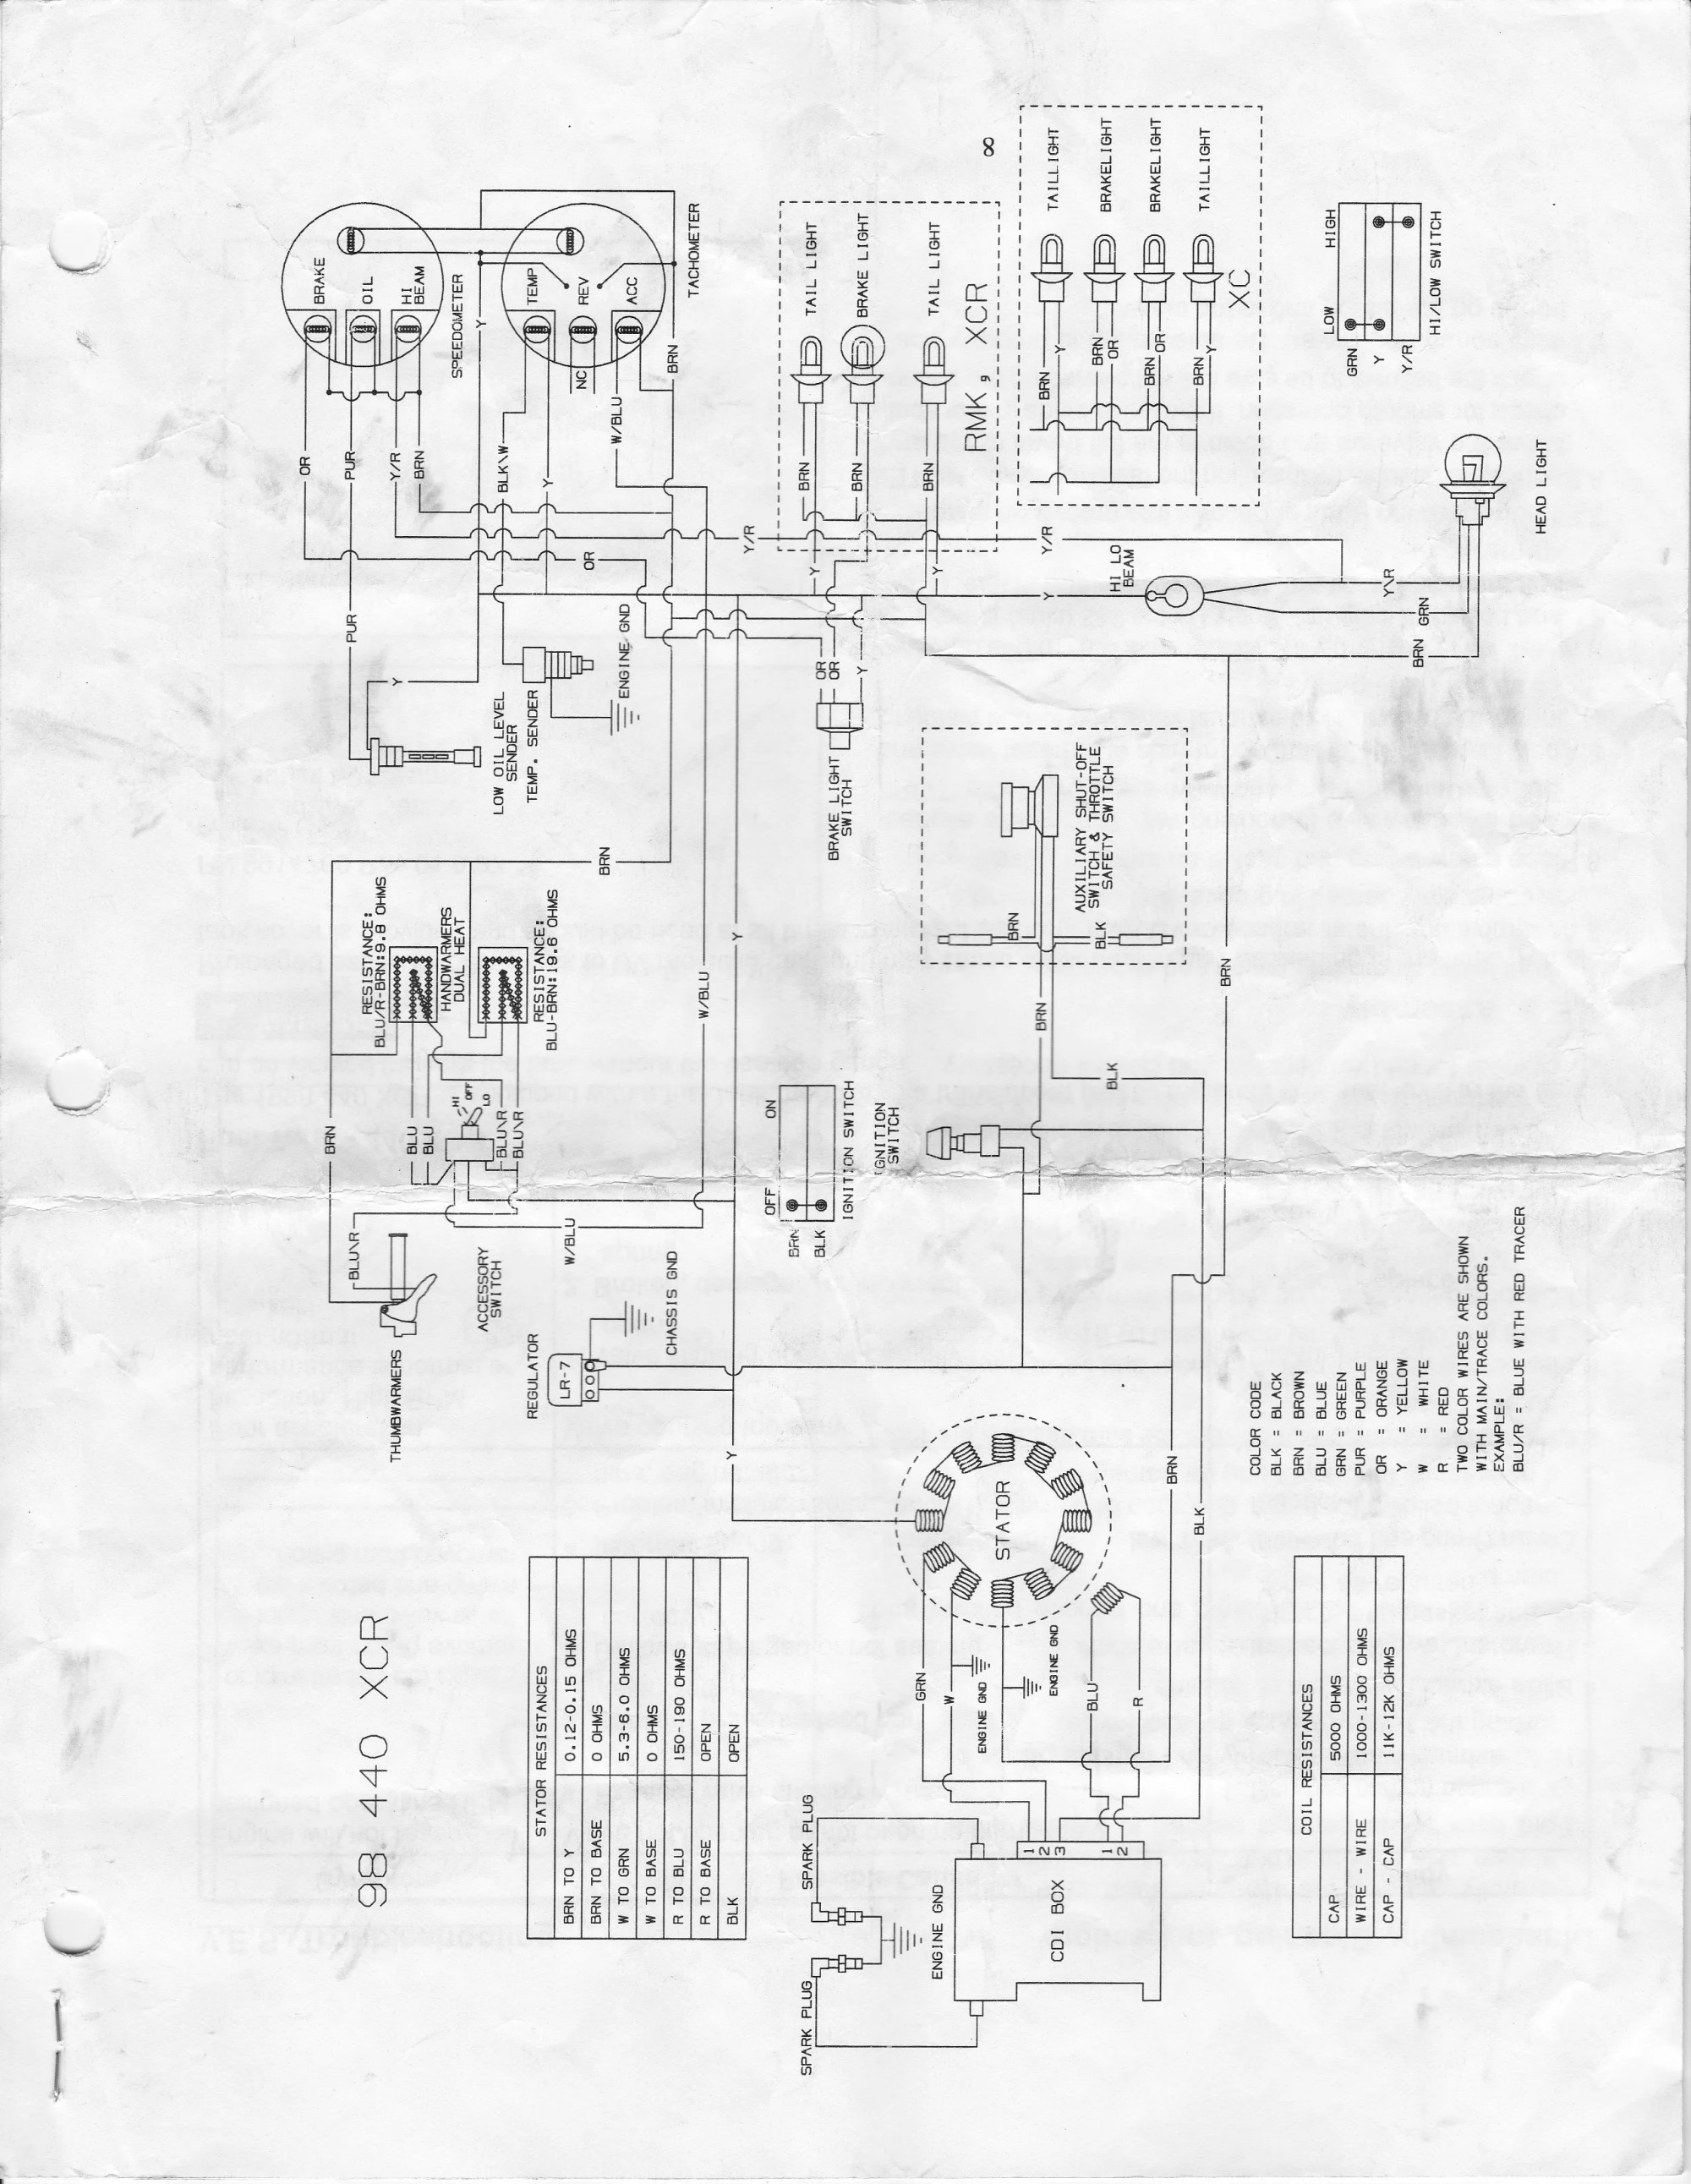 hight resolution of 1991 polaris trail boss 250 wiring diagram wiring diagram forwardpolaris trail boss 250 wiring diagram wiring